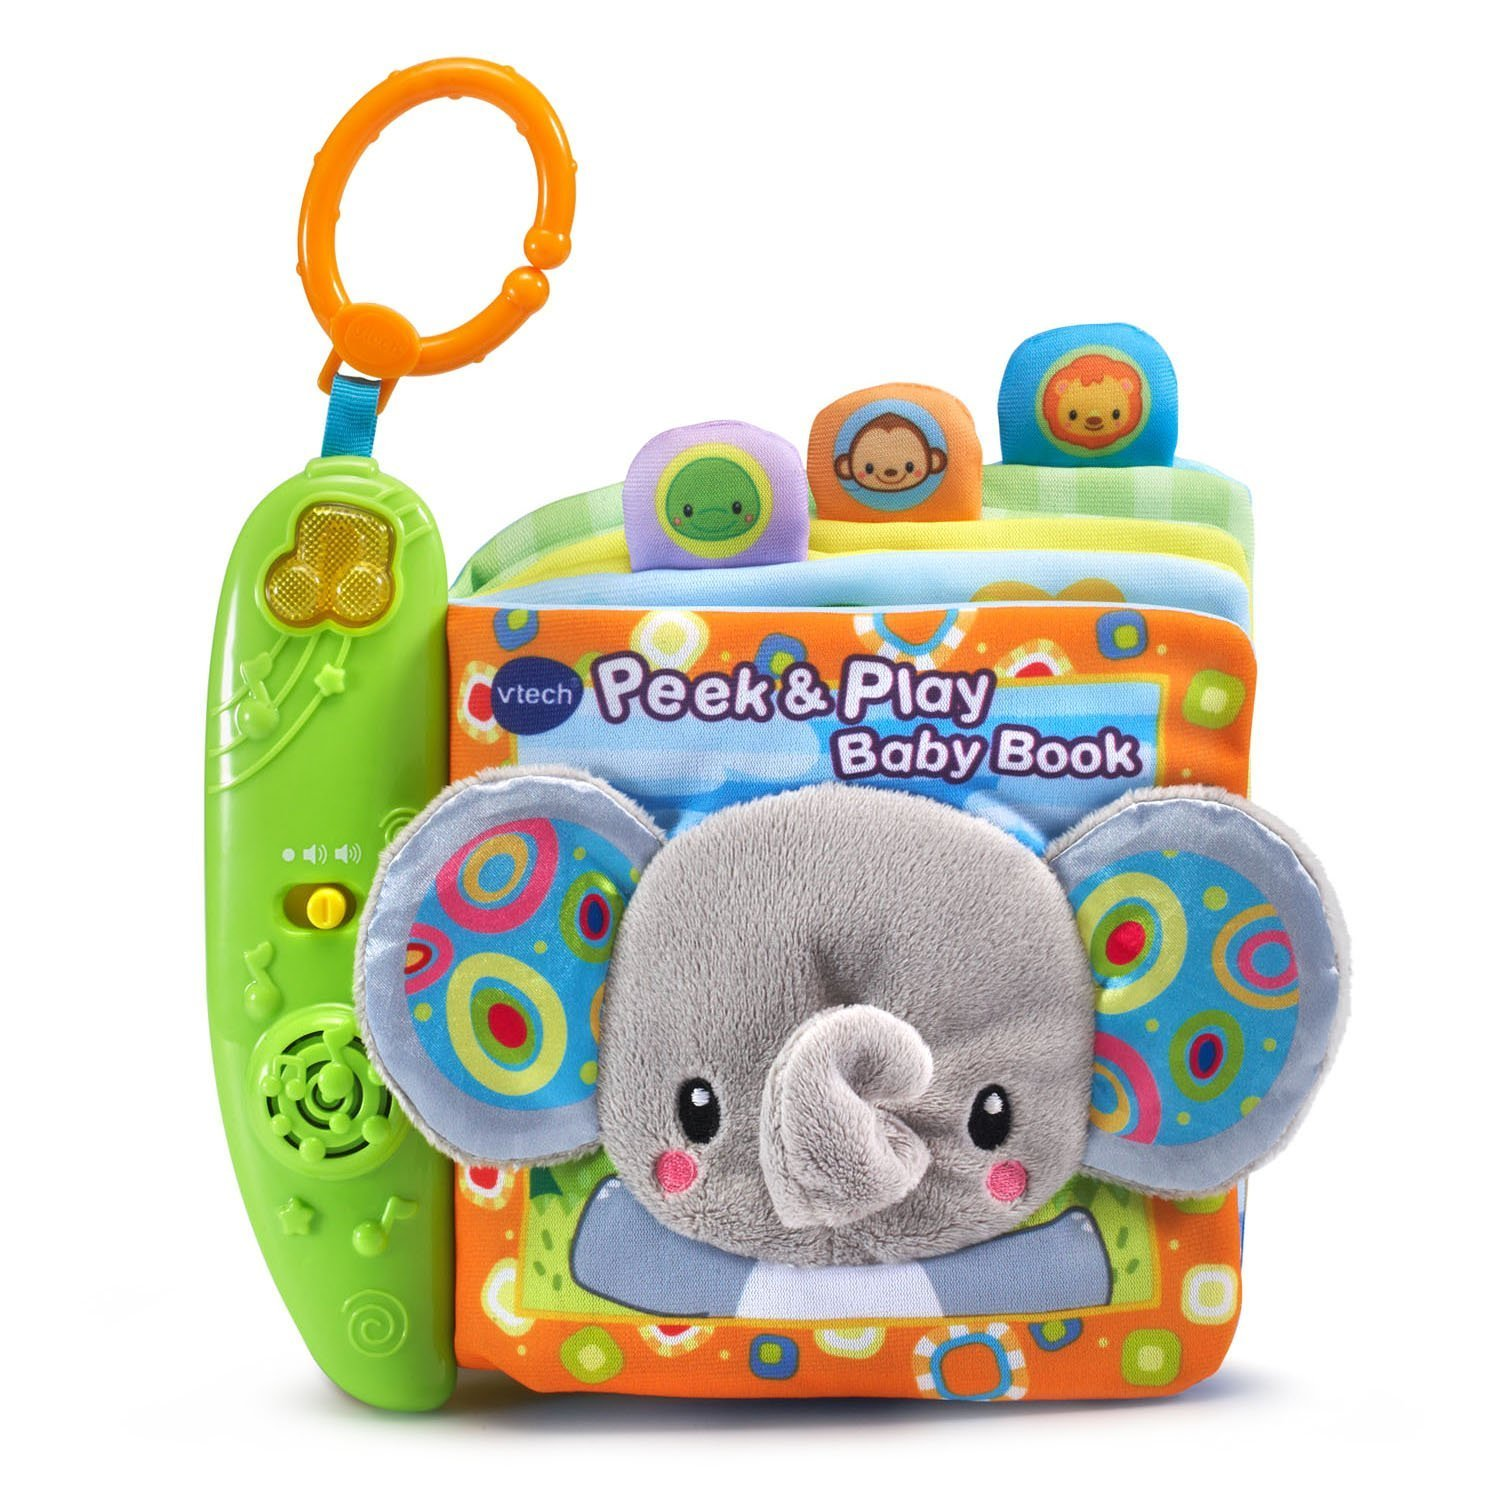 Peek & Play Baby Book Toy, The Peek and Play Baby Book by VTech is a real page turner; 6 soft, interactive book pages introduce animals through.., By VTech